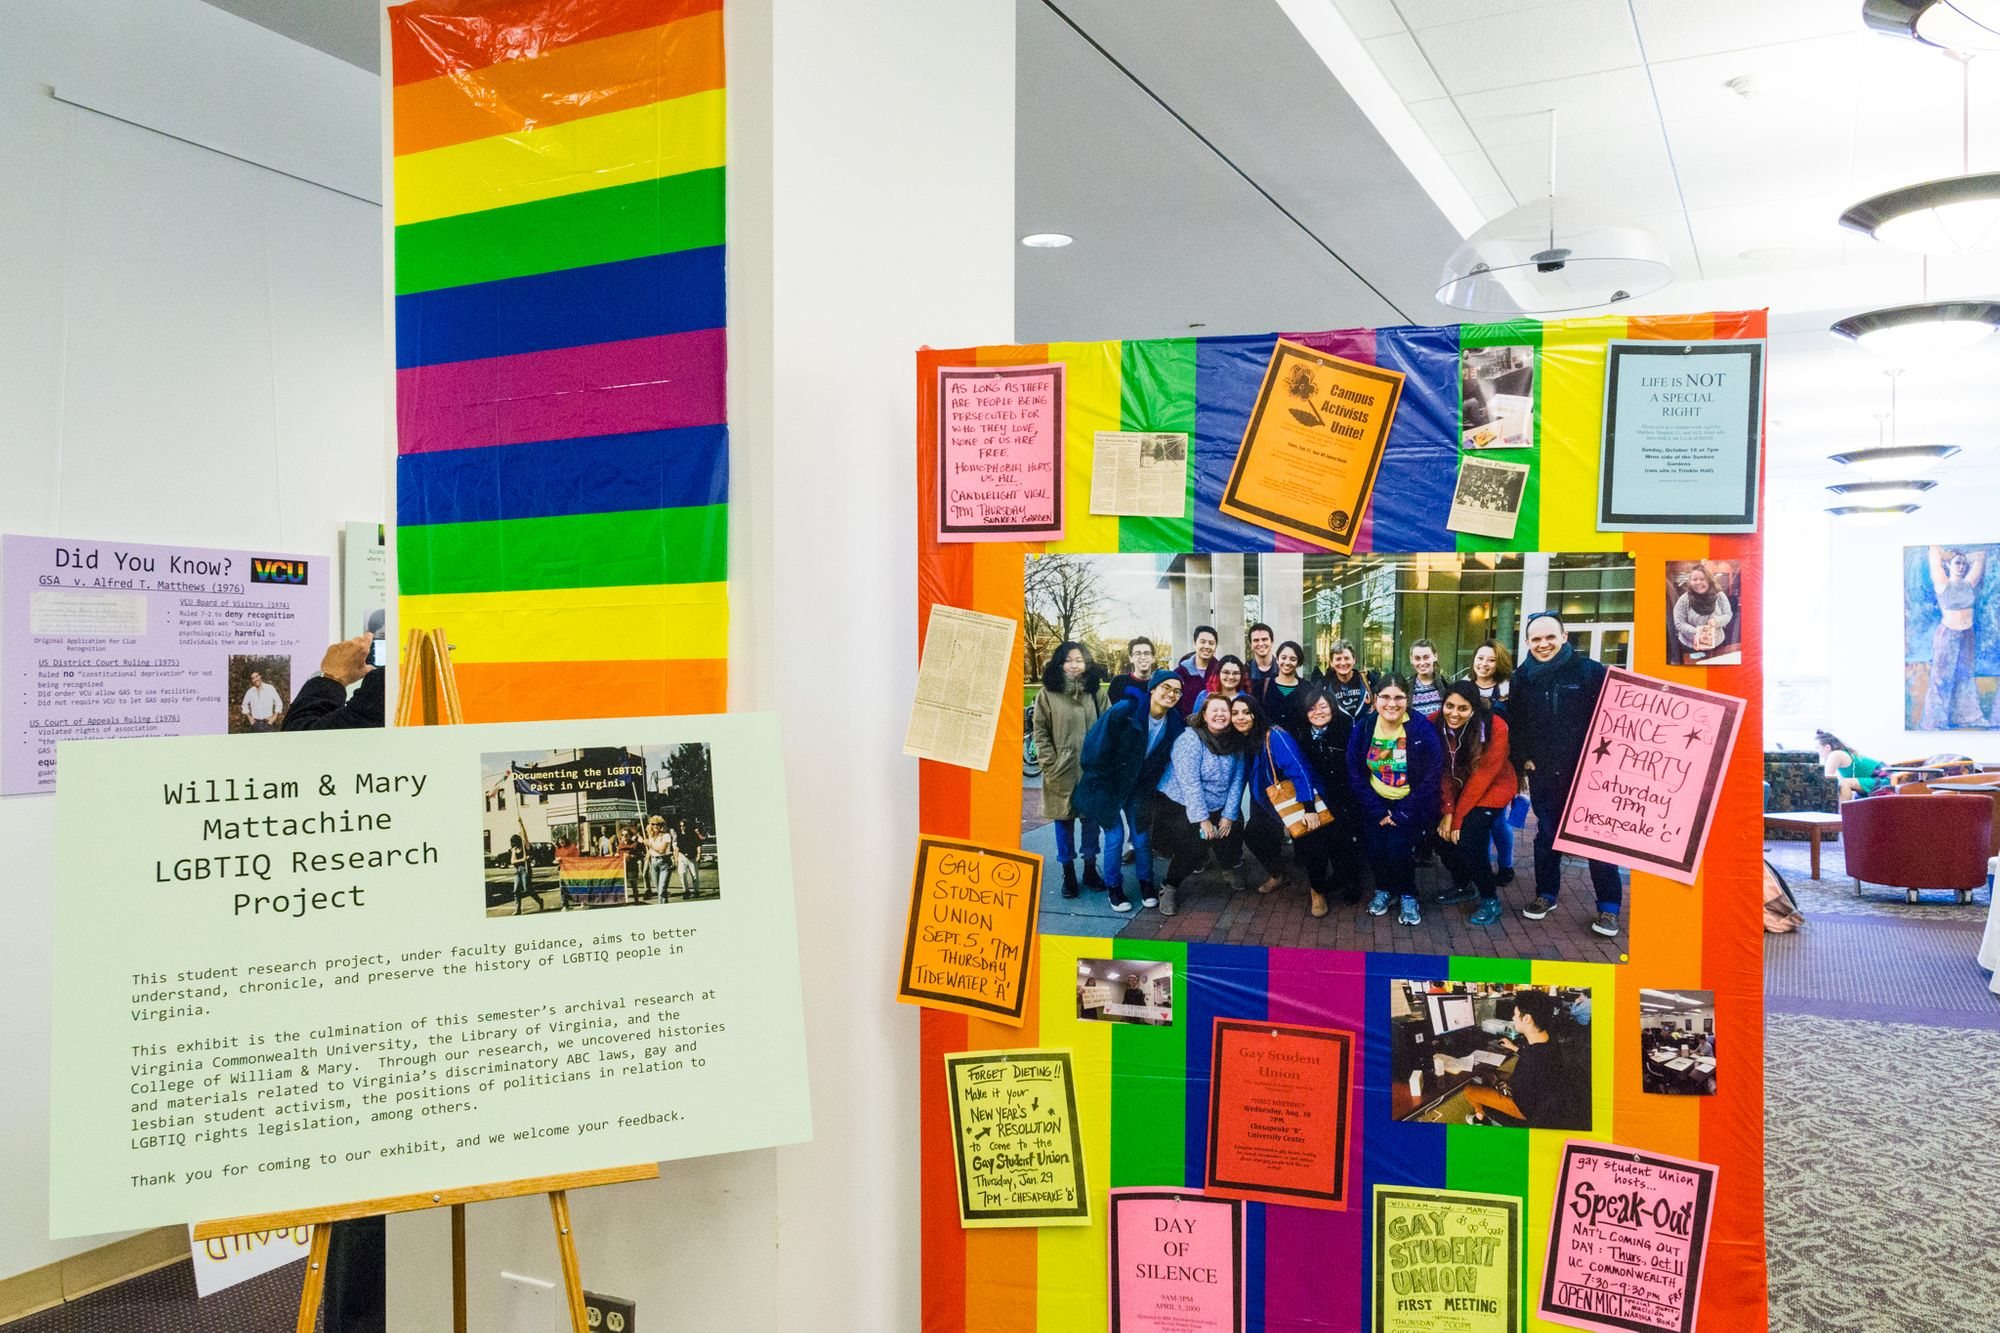 William & Mary Undergrads Delve Into Archives to Help Document Virginia's LGBTIQ Past